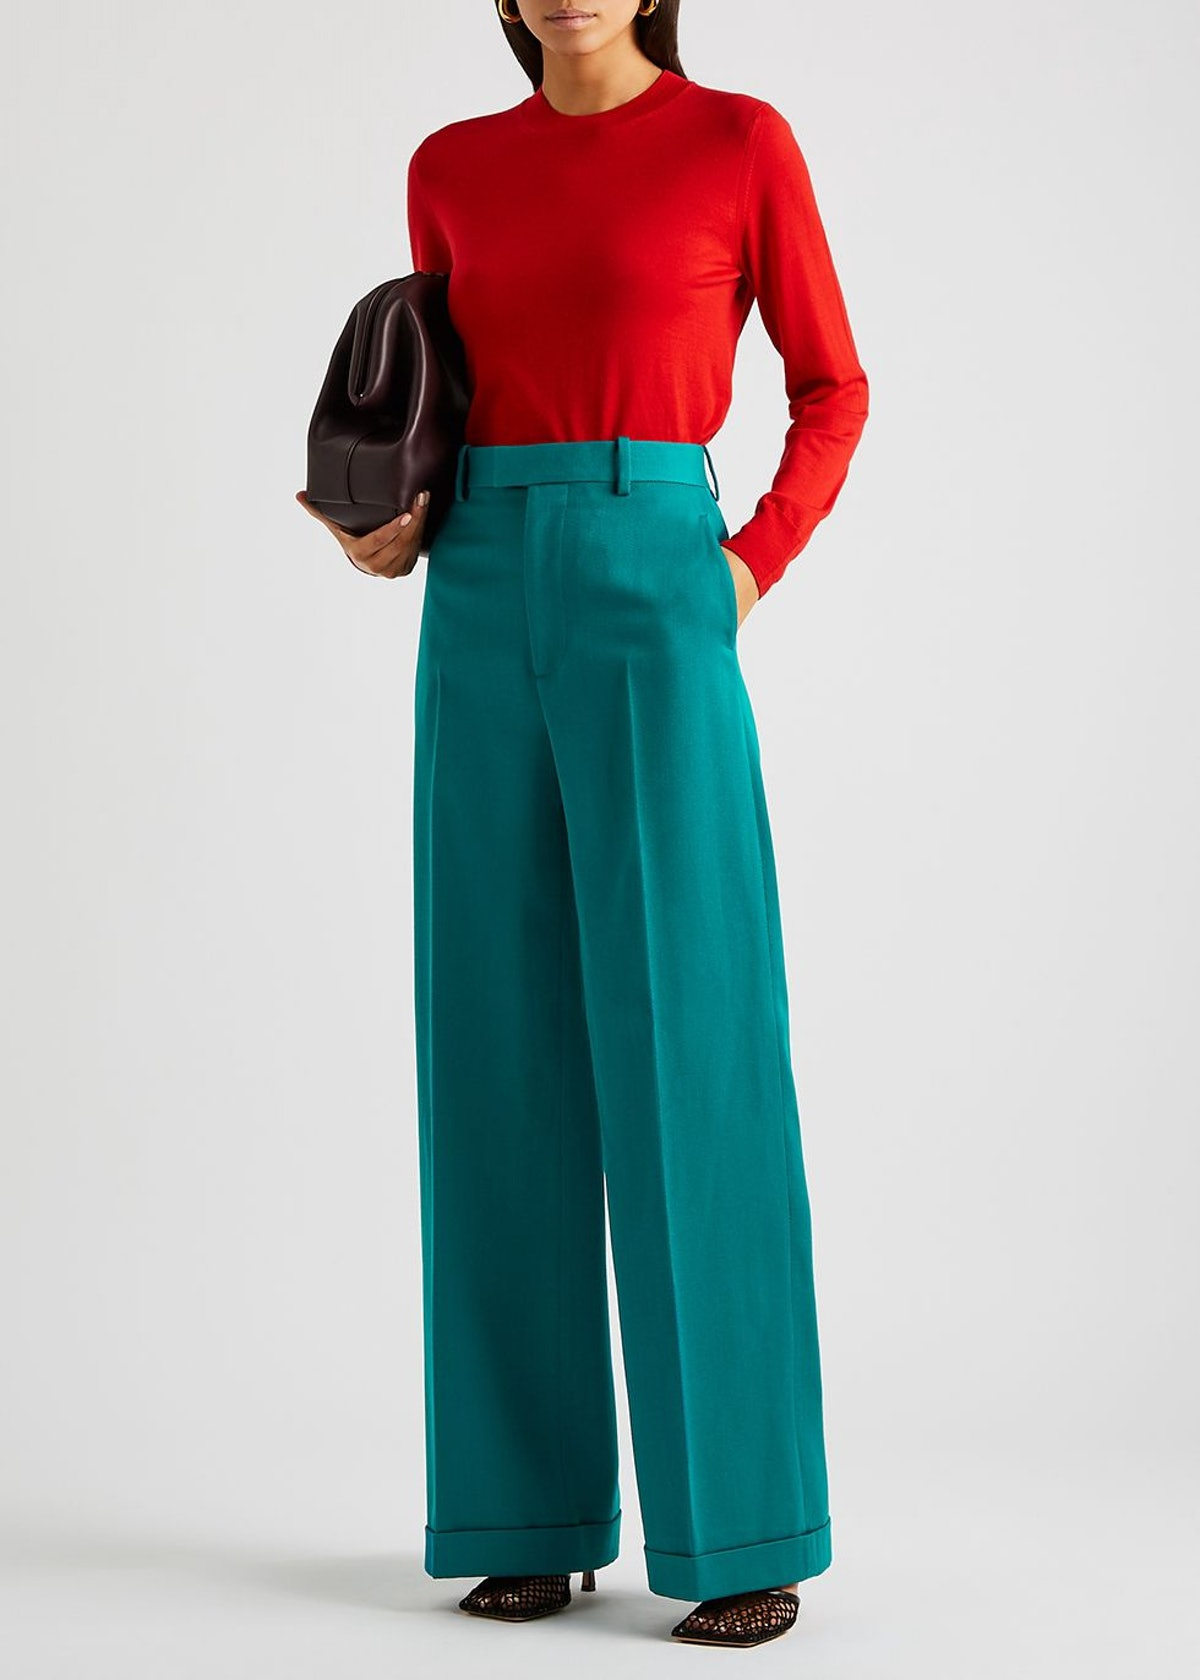 Red fine-knit wool jumper: additional image